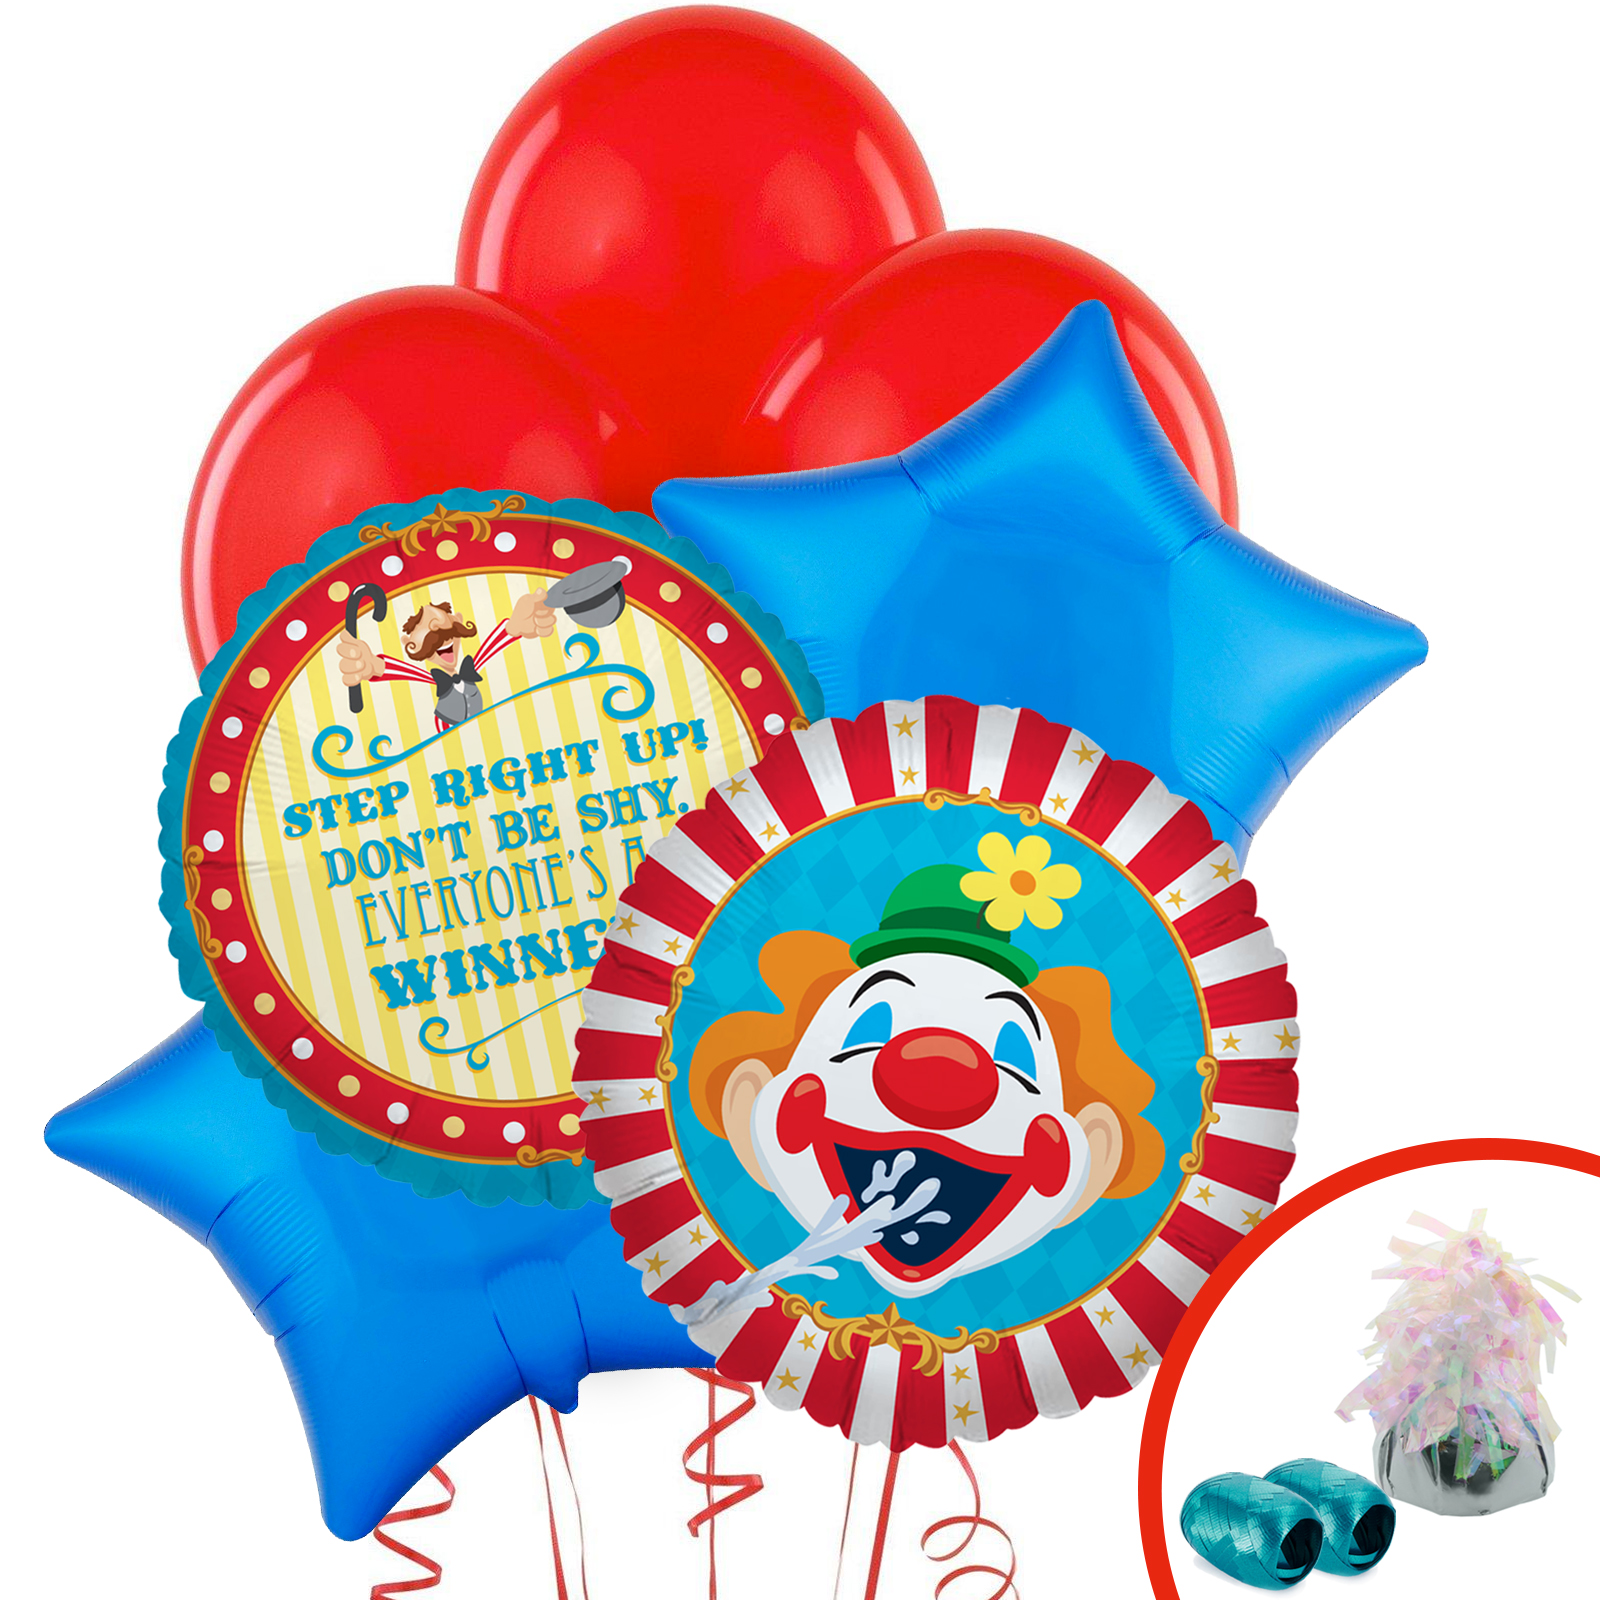 Where can you buy balloon arch kits in delaware - Where Can You Buy Balloon Arch Kits In Delaware 40